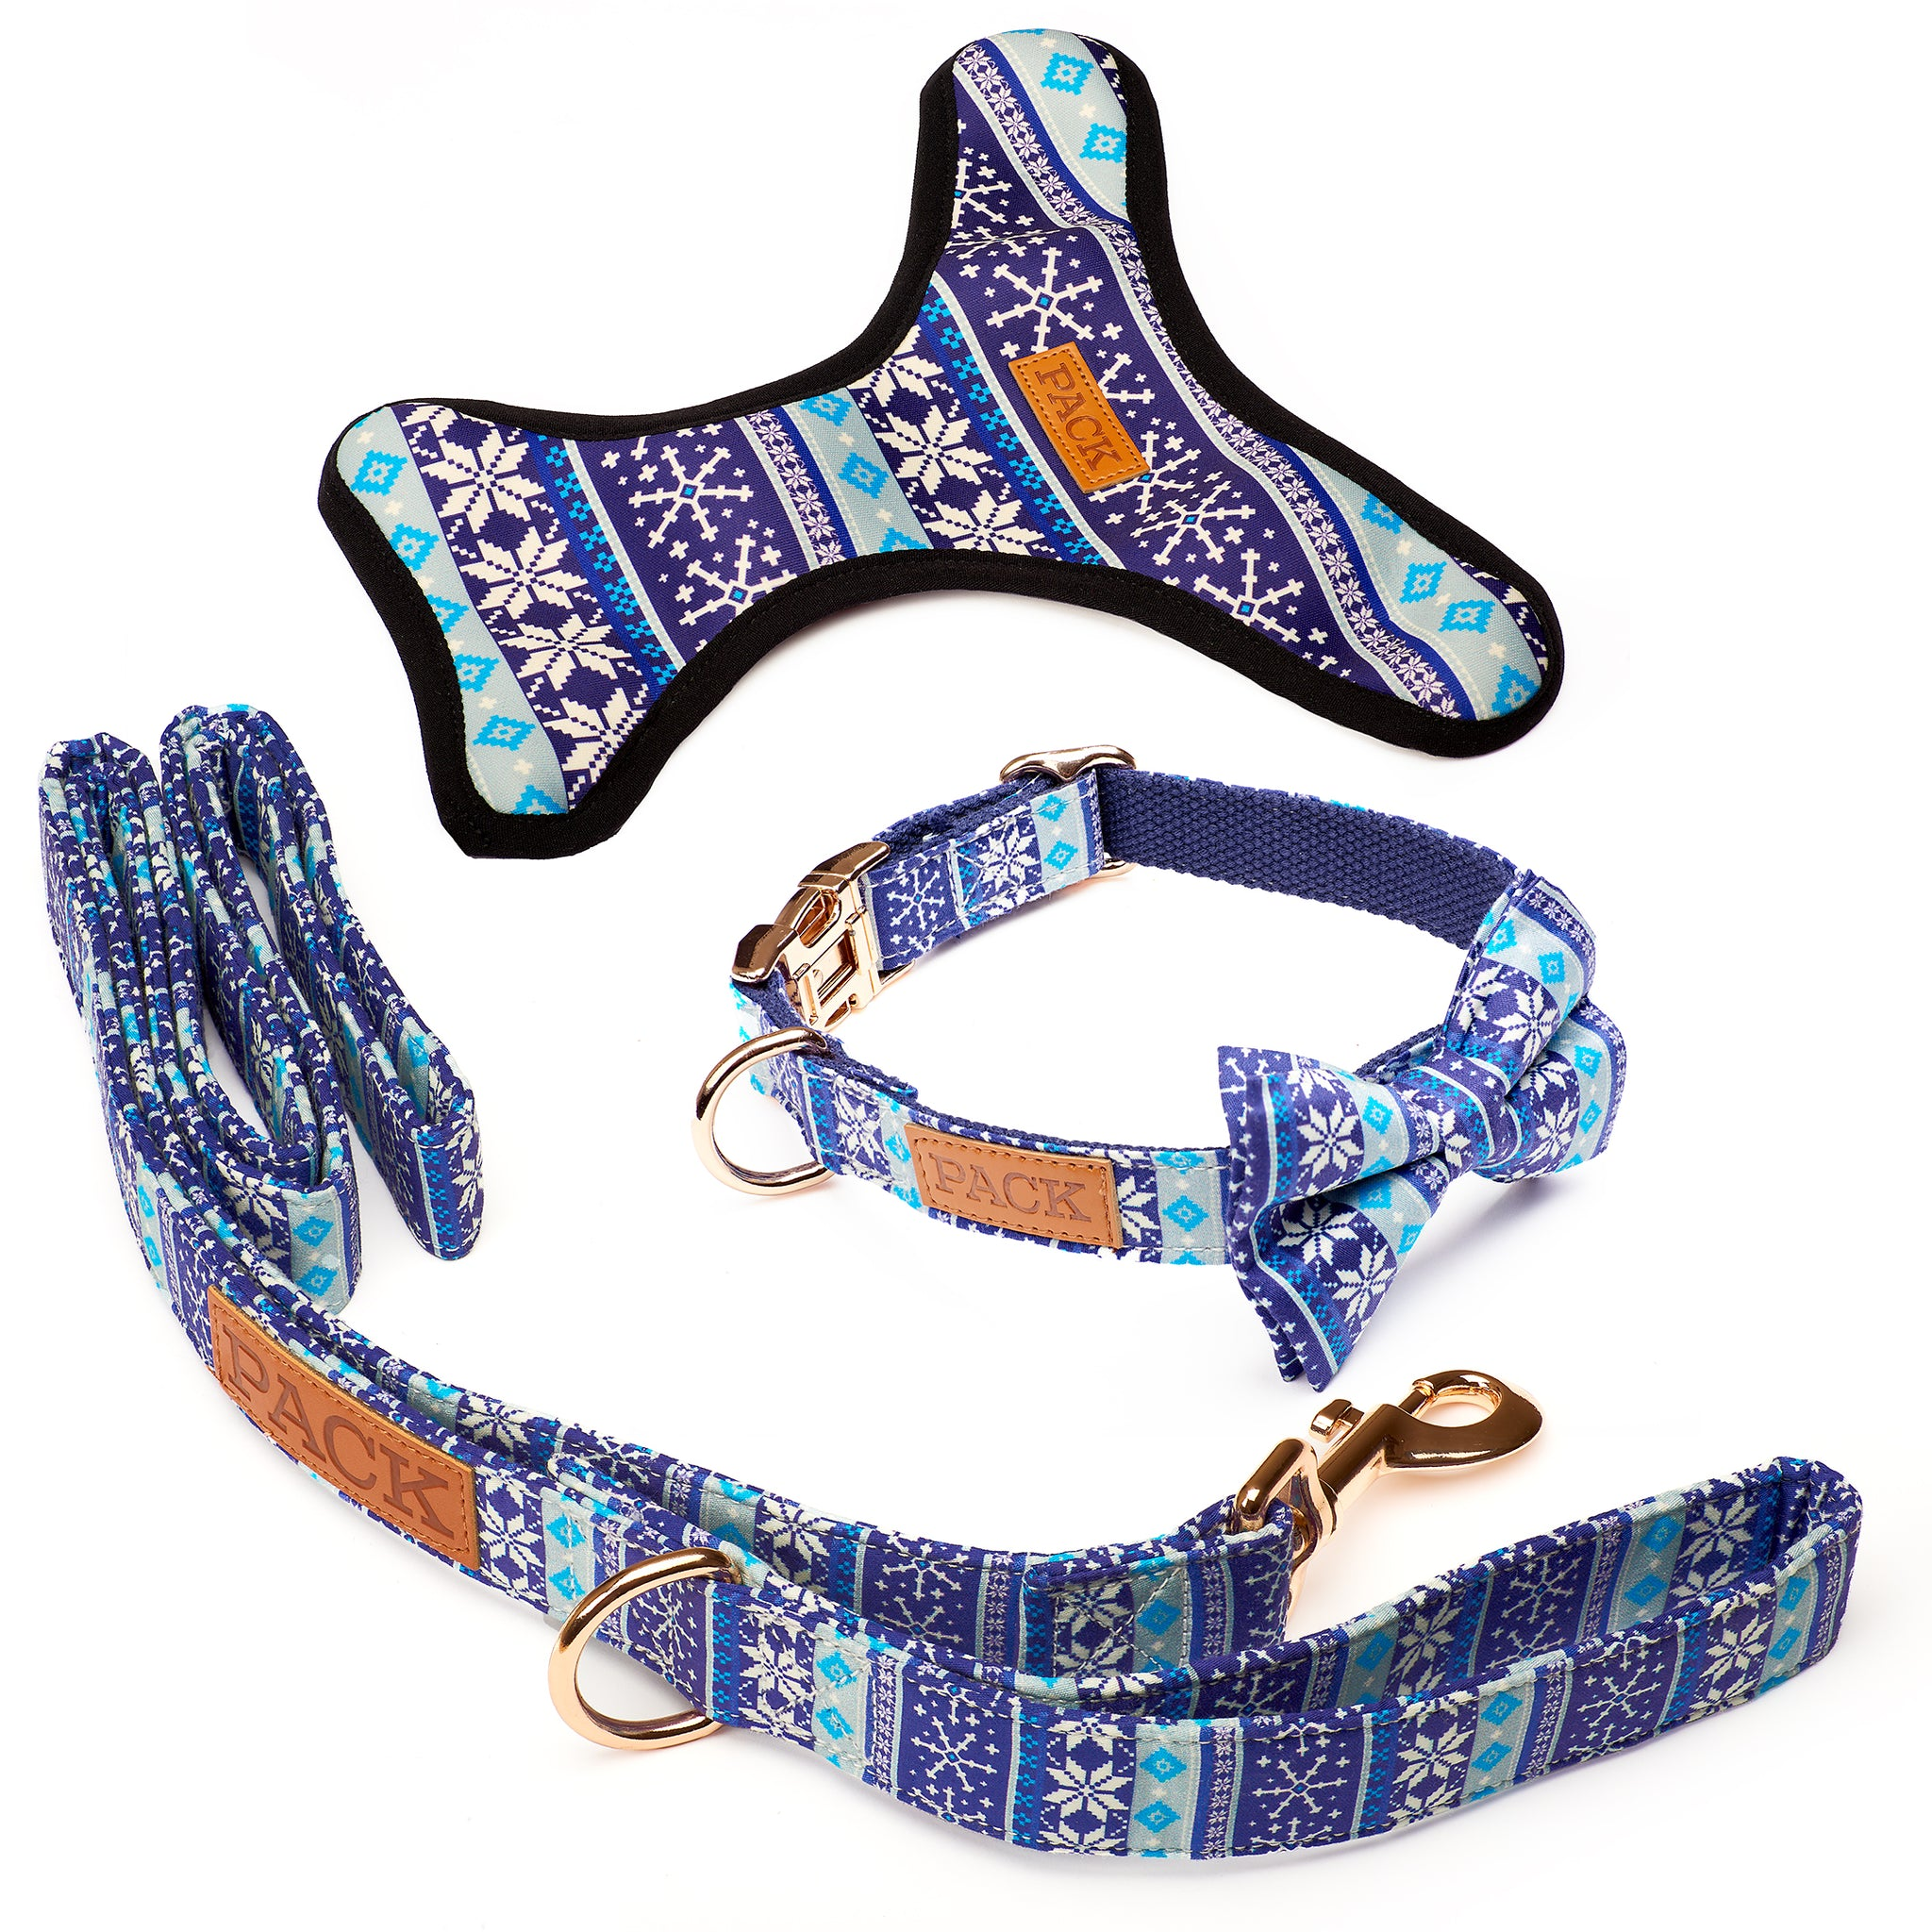 The Sweater Leash + Bowtie Collar + Reversible Harness